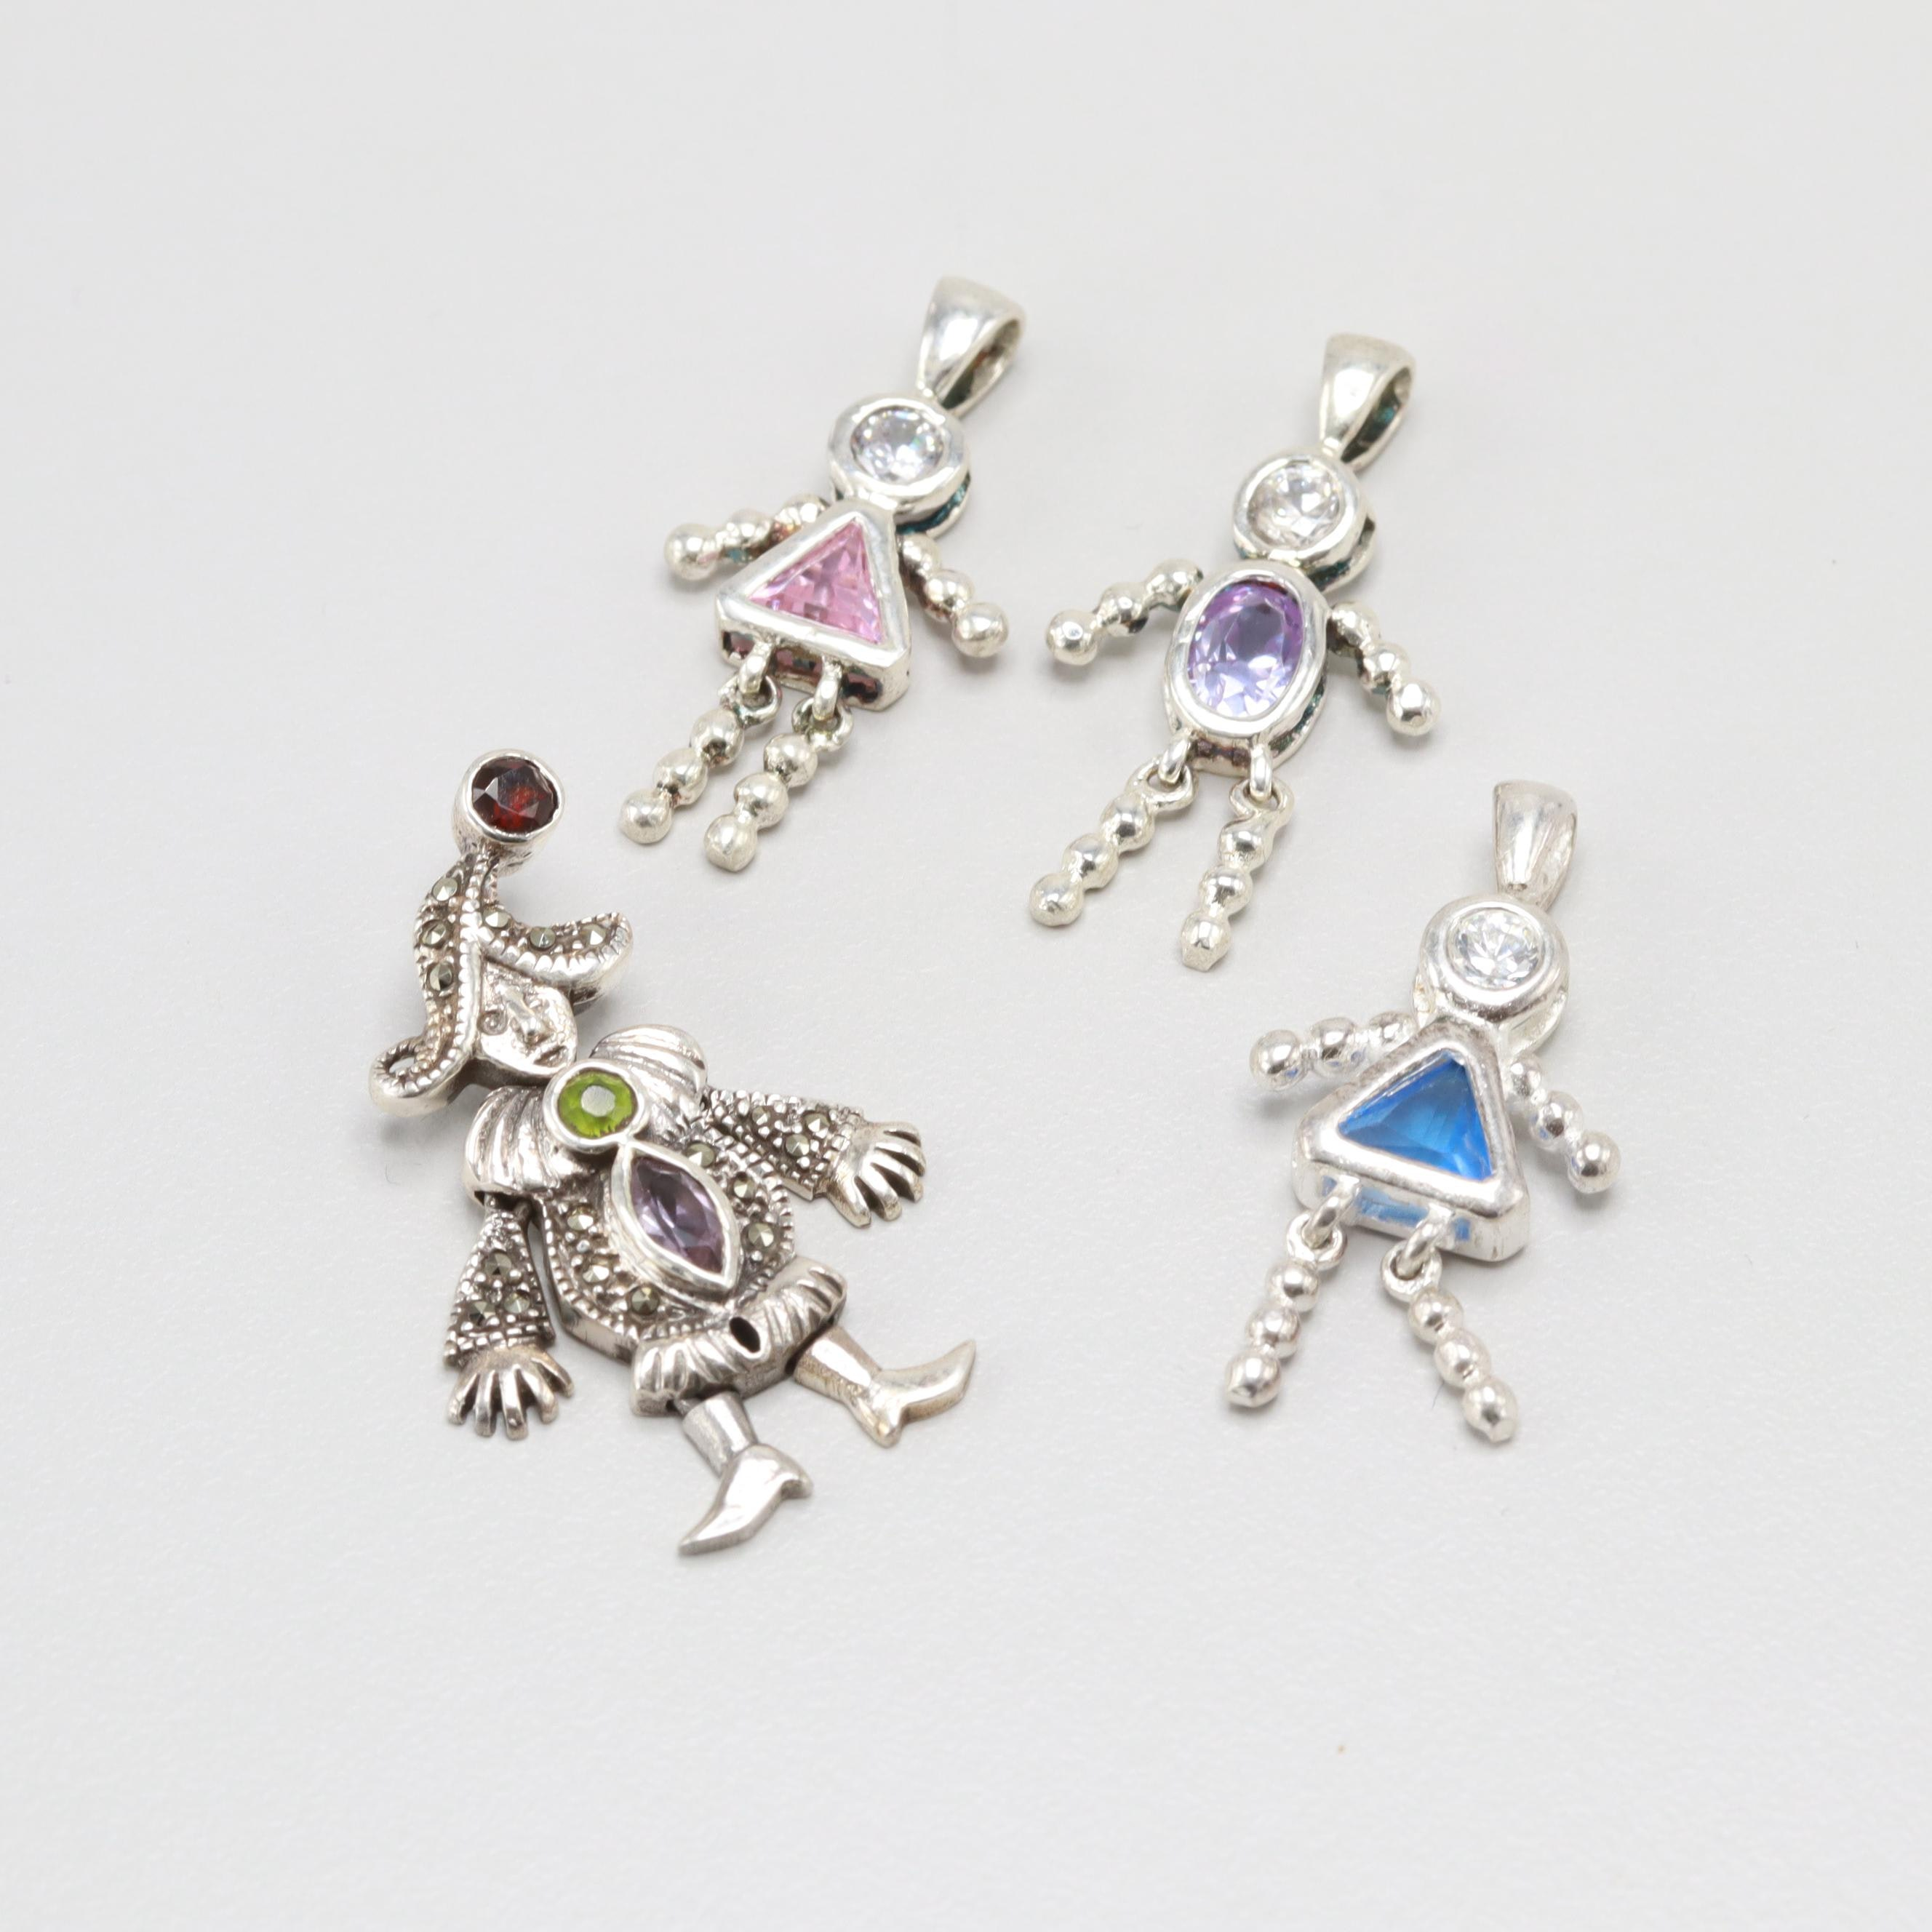 Sterling Silver Garnet, Amethyst, and Marcasite People Pendants